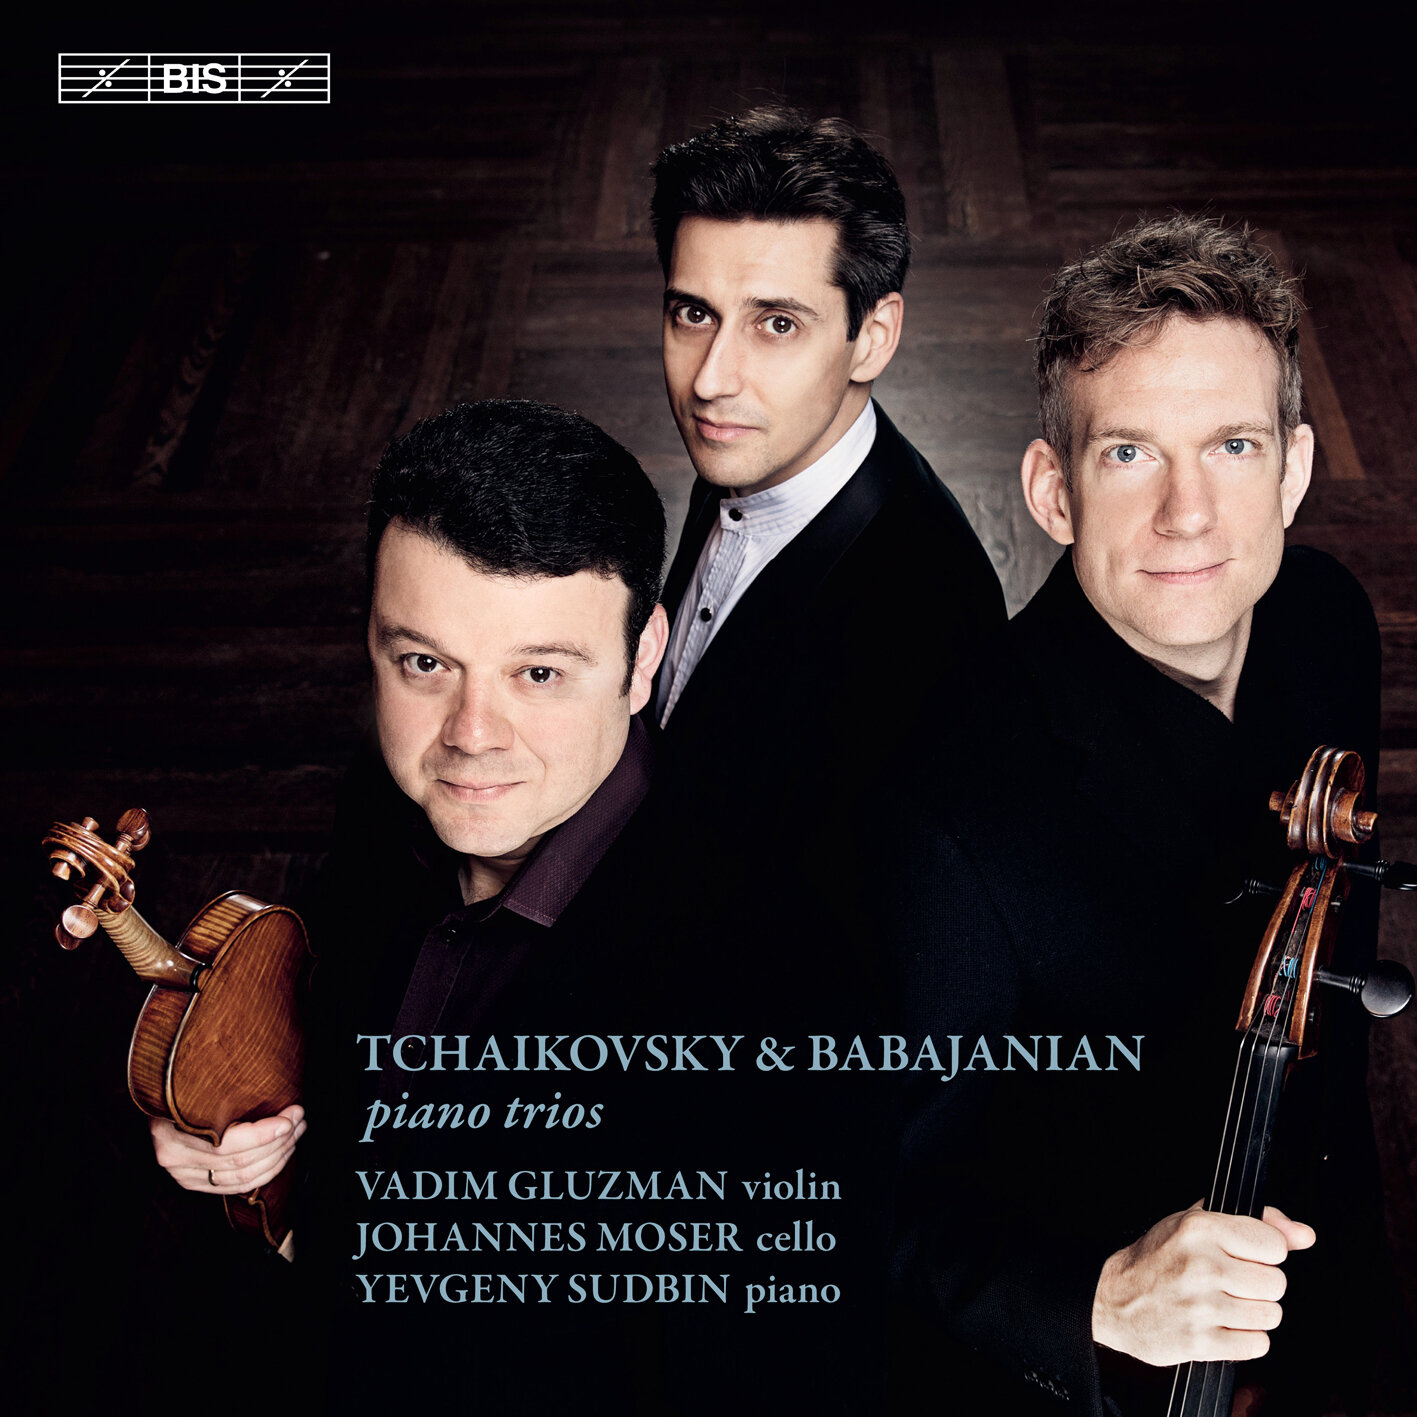 TCHAIKOVSKY & BABAJANIAN PIANO TRIOS  click to order the album